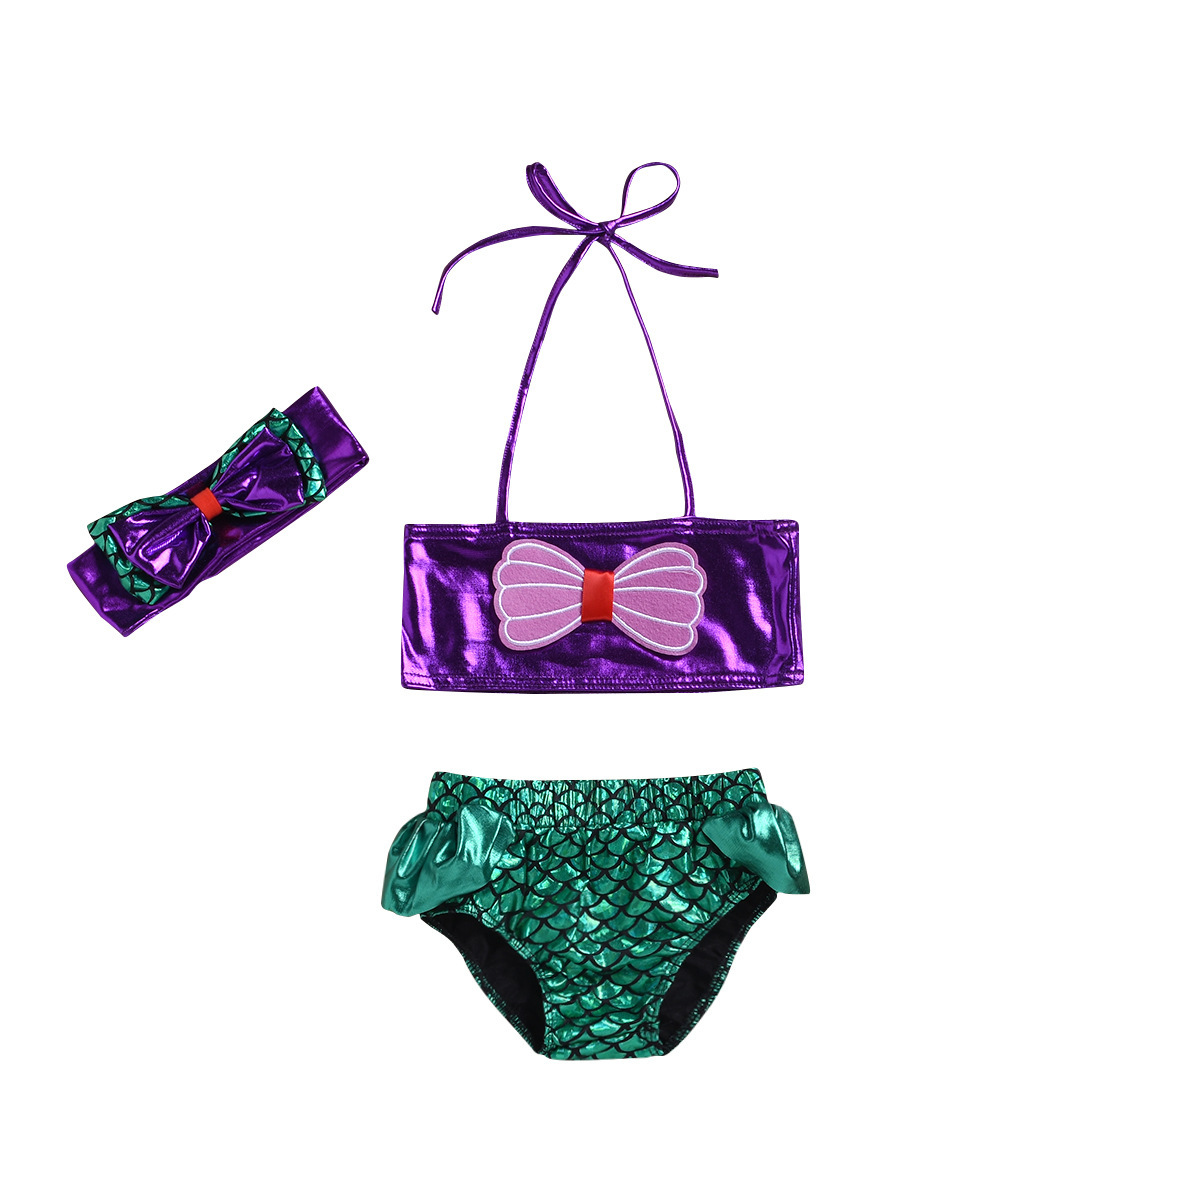 2019 Girls Mermaid Swimming Suit Women's Princess Split Type Camisole Europe And America KID'S Swimwear Bikini Baby Suit